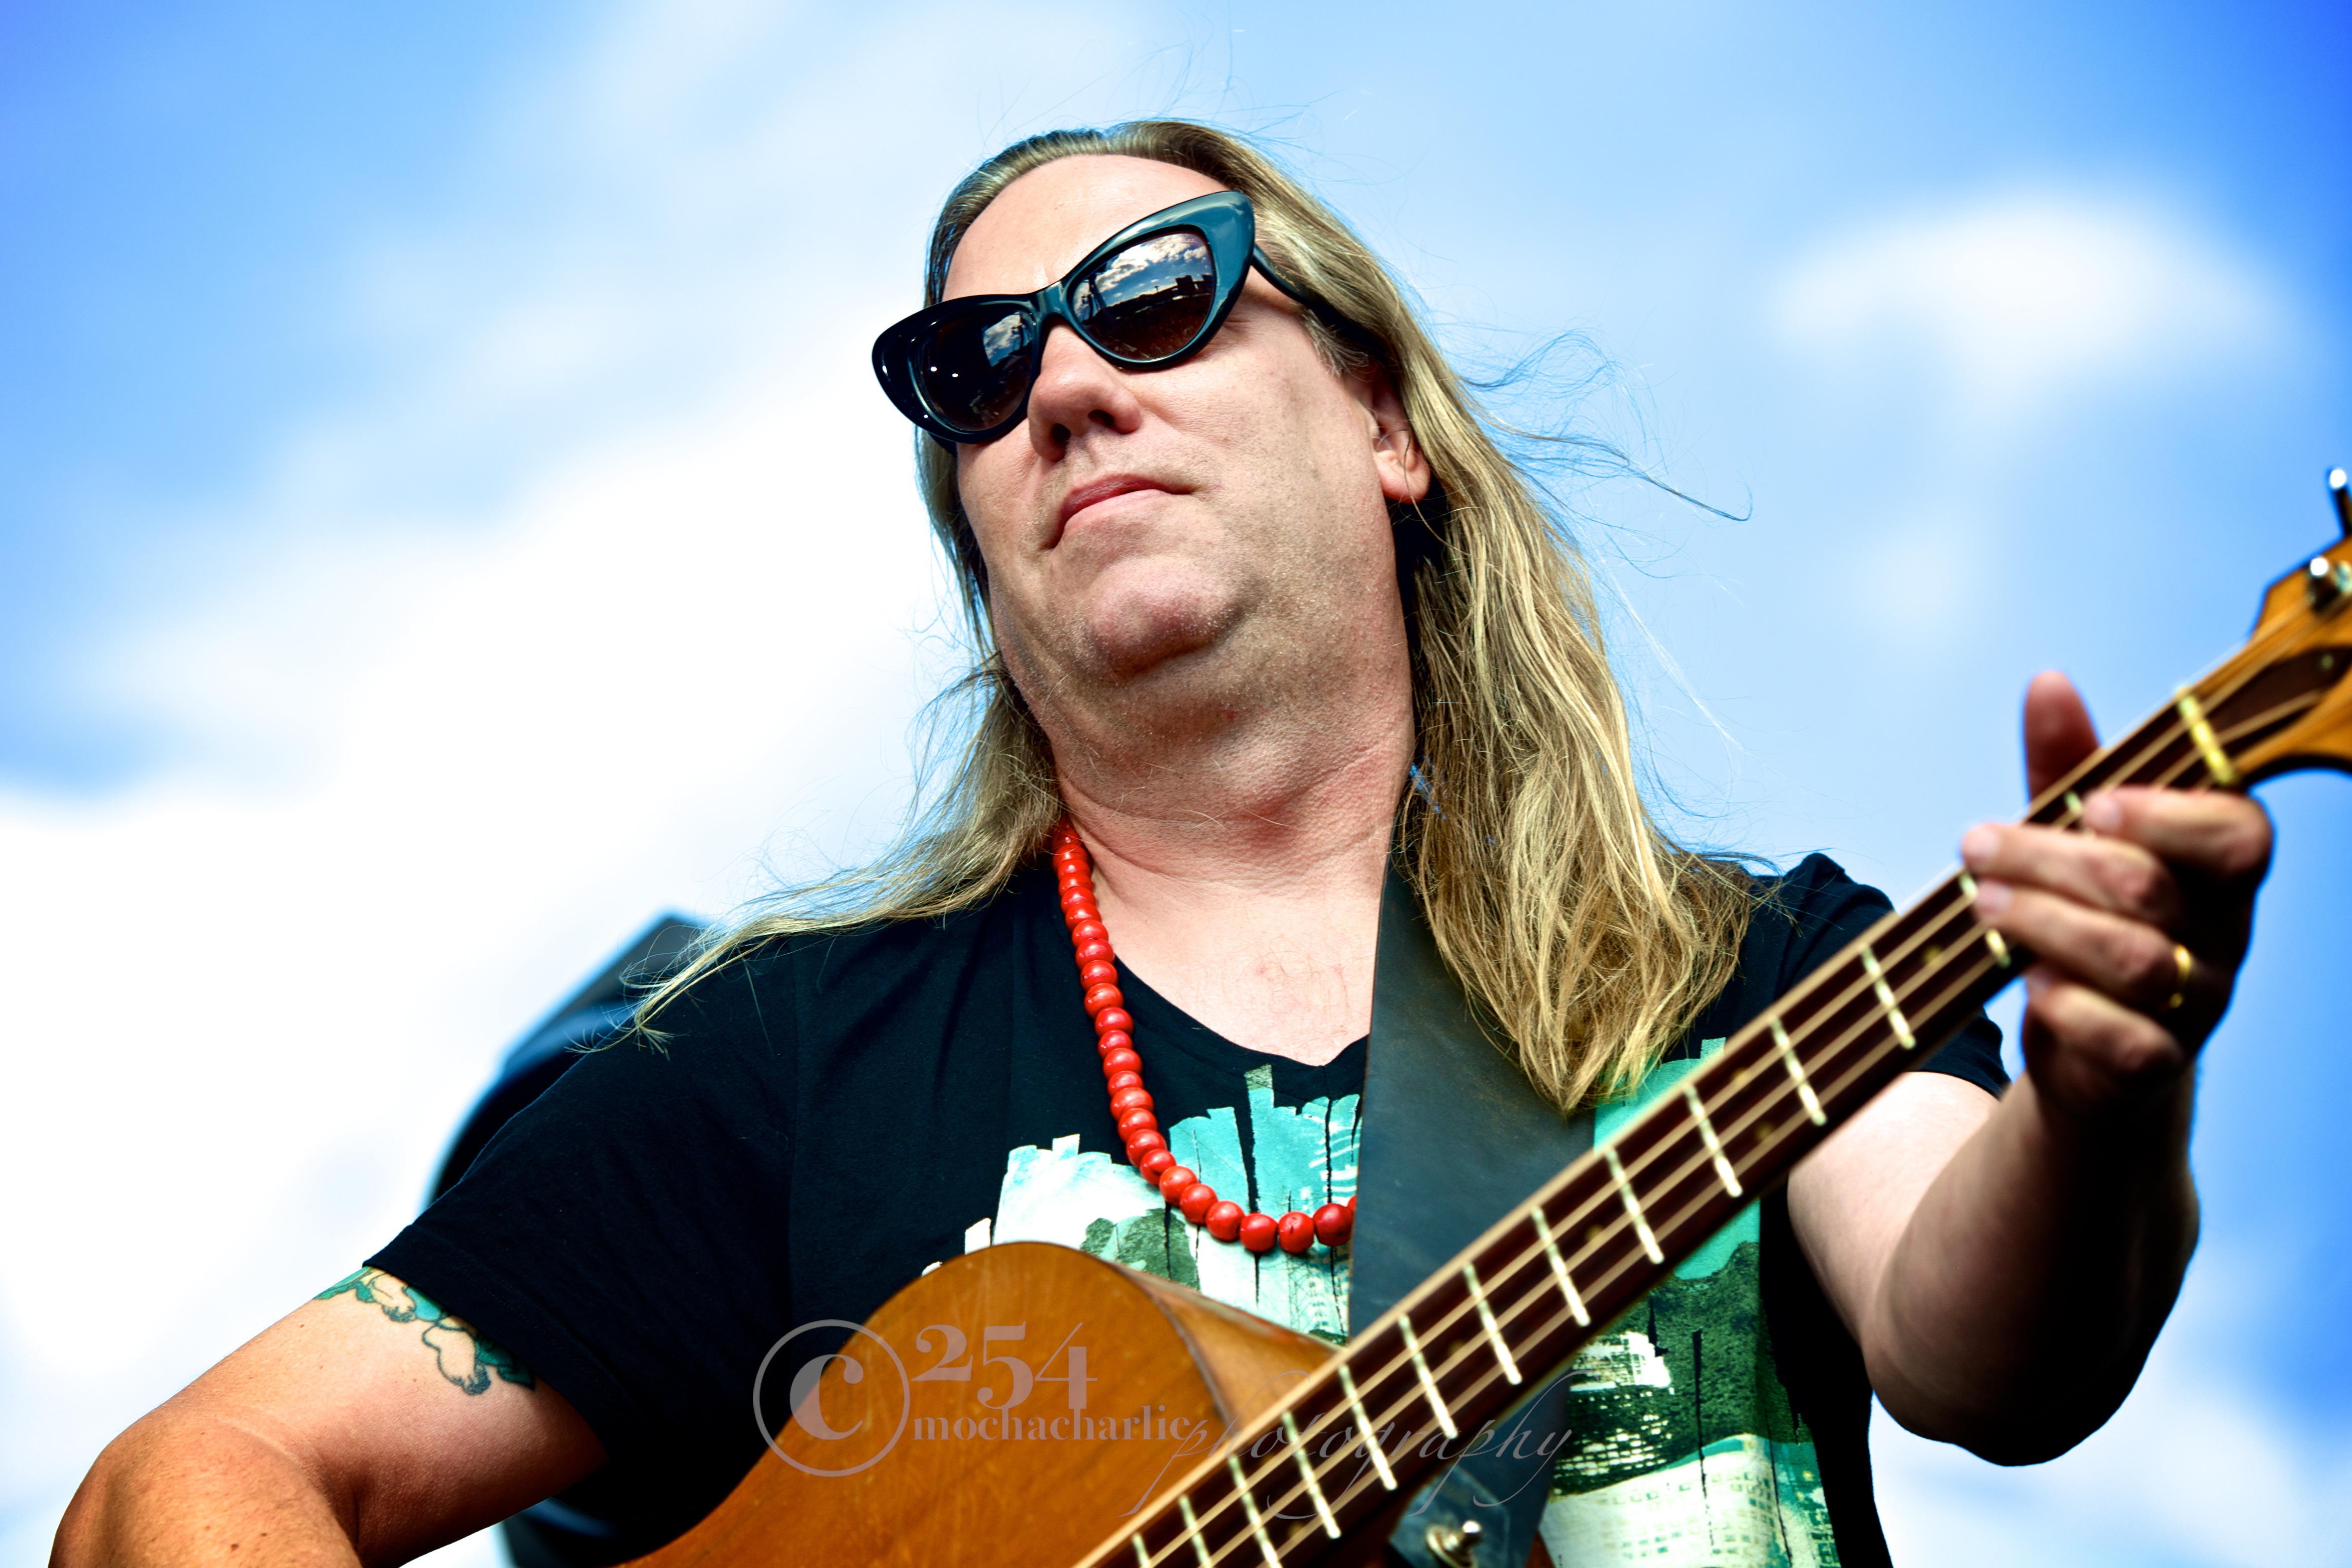 Violent Femmes at Project Pabst (Photo by Mocha Charlie)